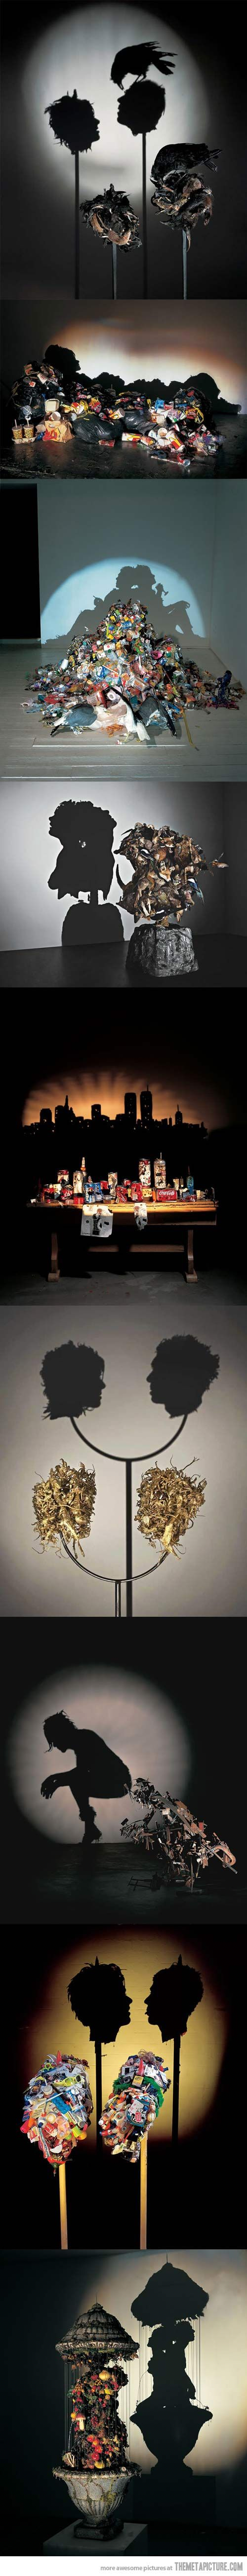 Amazing Shadow Creations... It boggles the mind to think that these are real!